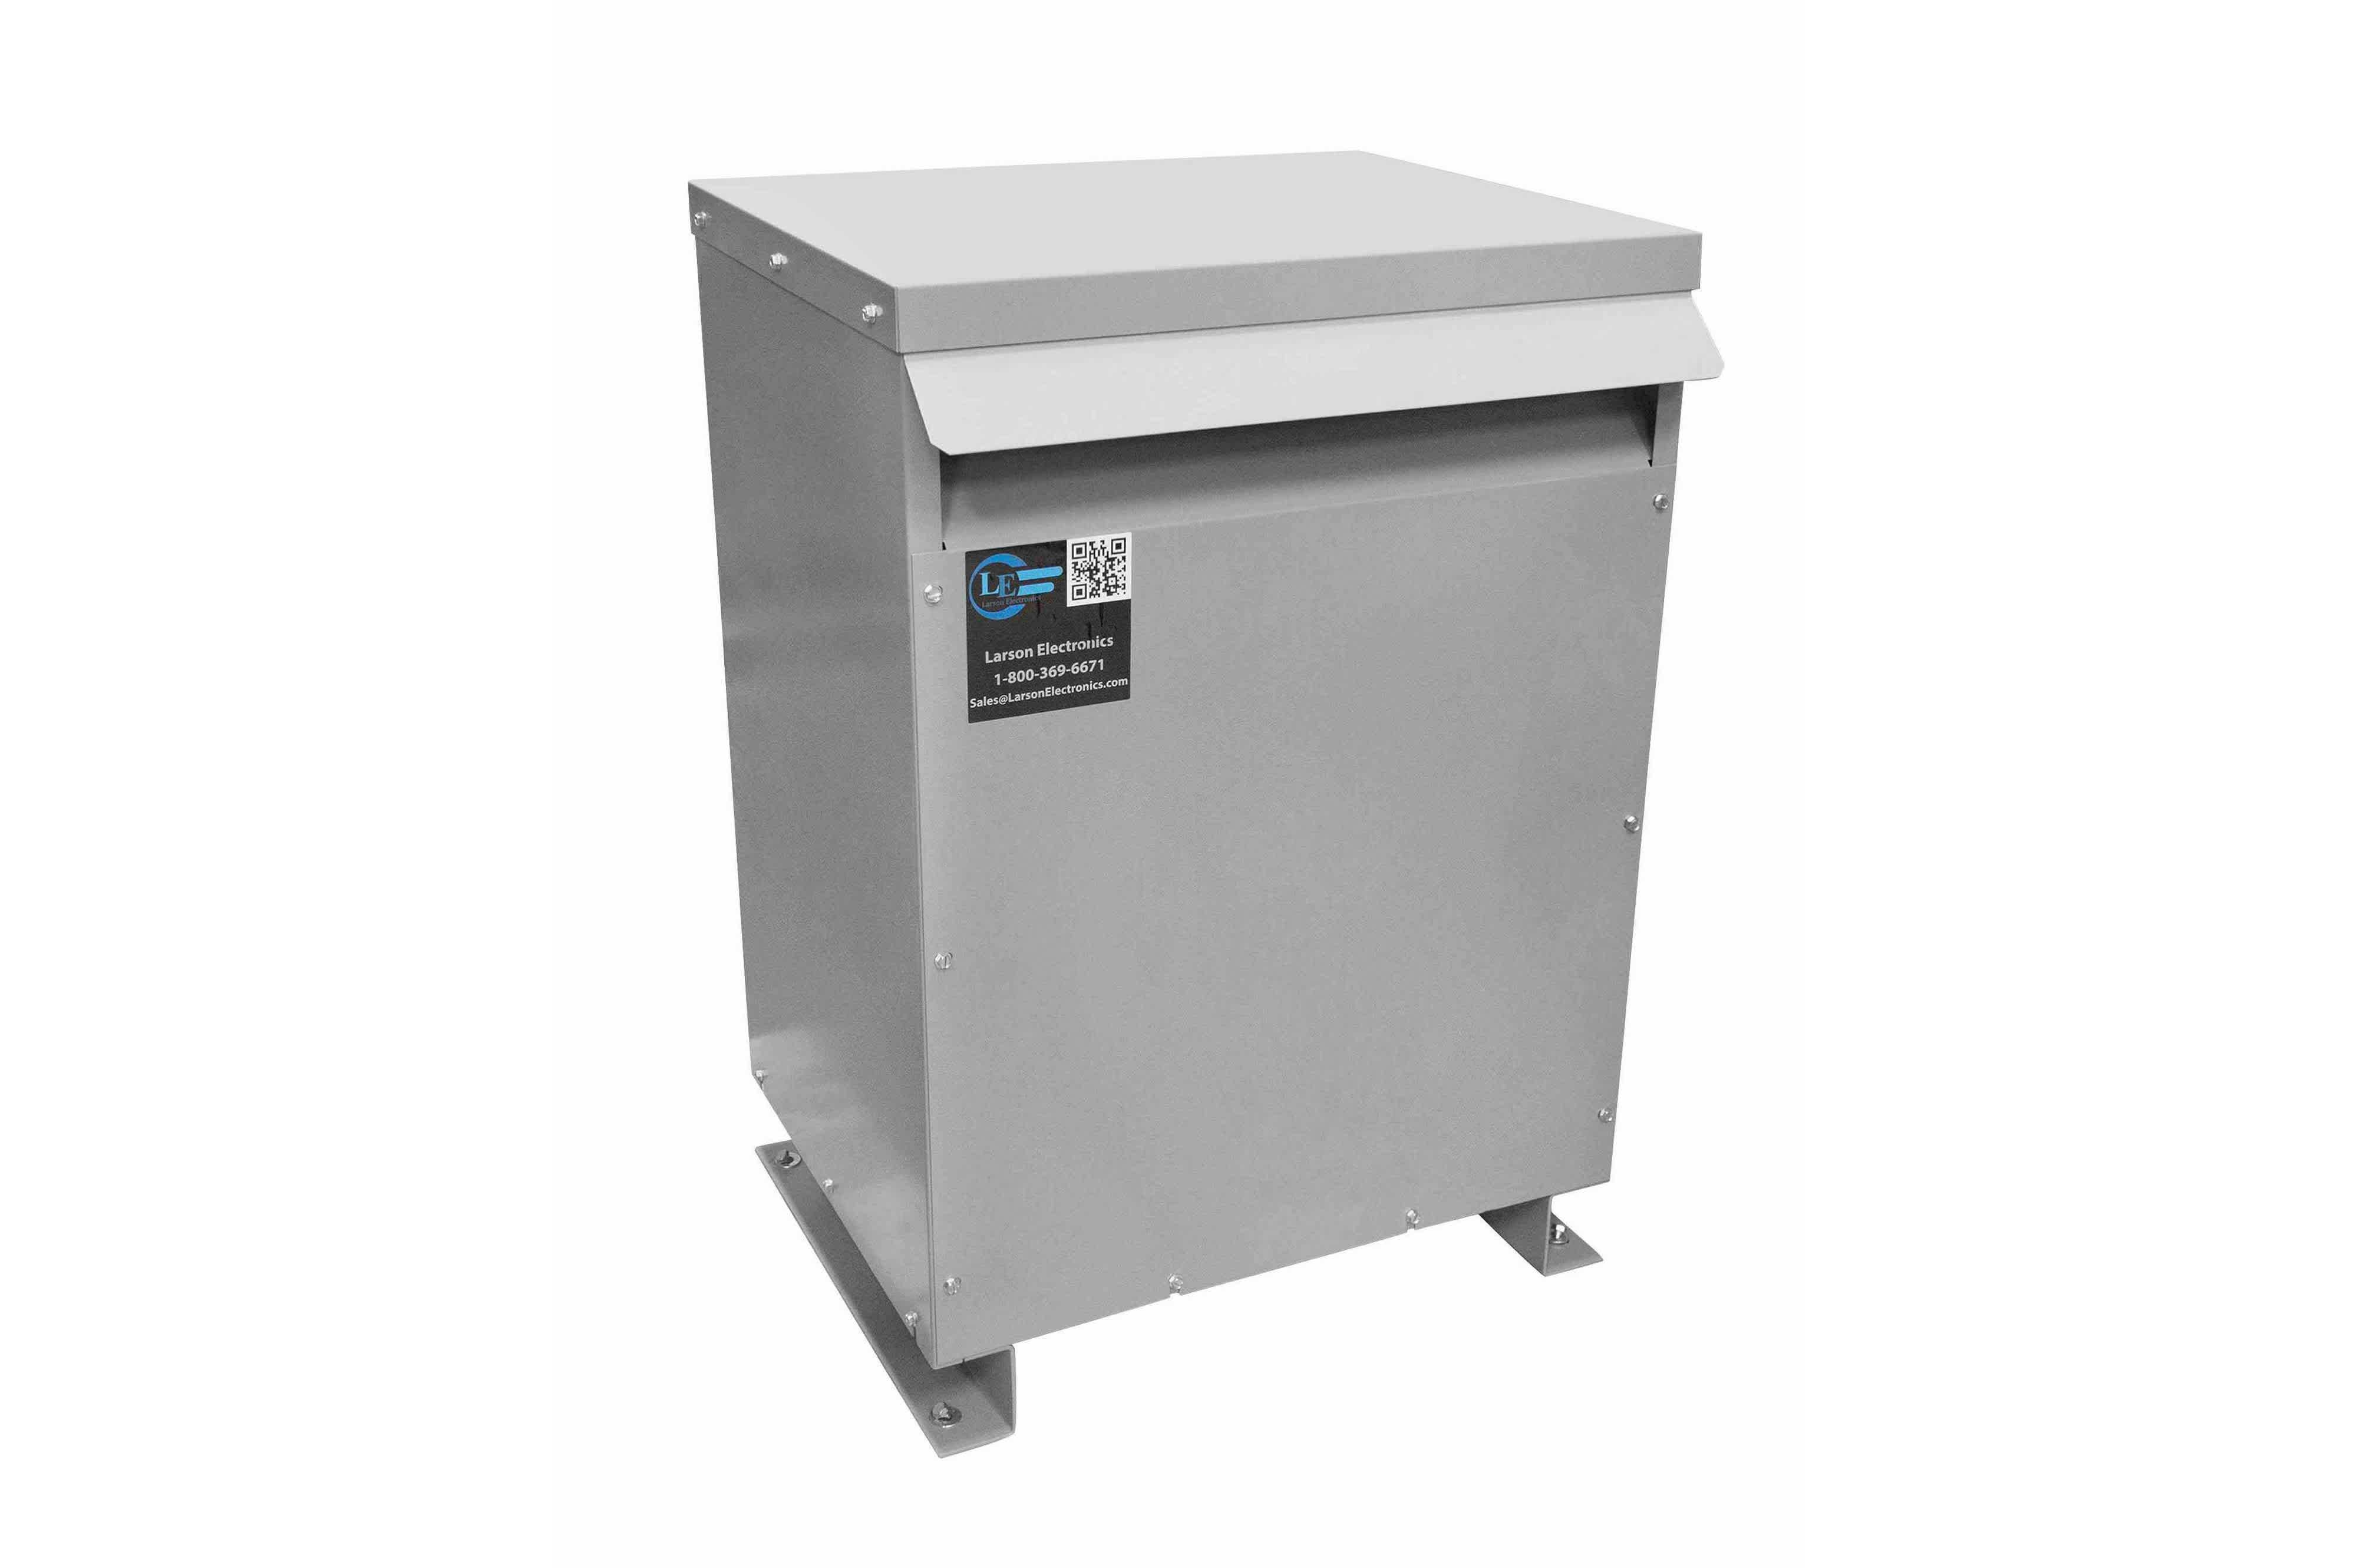 1000 kVA 3PH Isolation Transformer, 230V Delta Primary, 208V Delta Secondary, N3R, Ventilated, 60 Hz